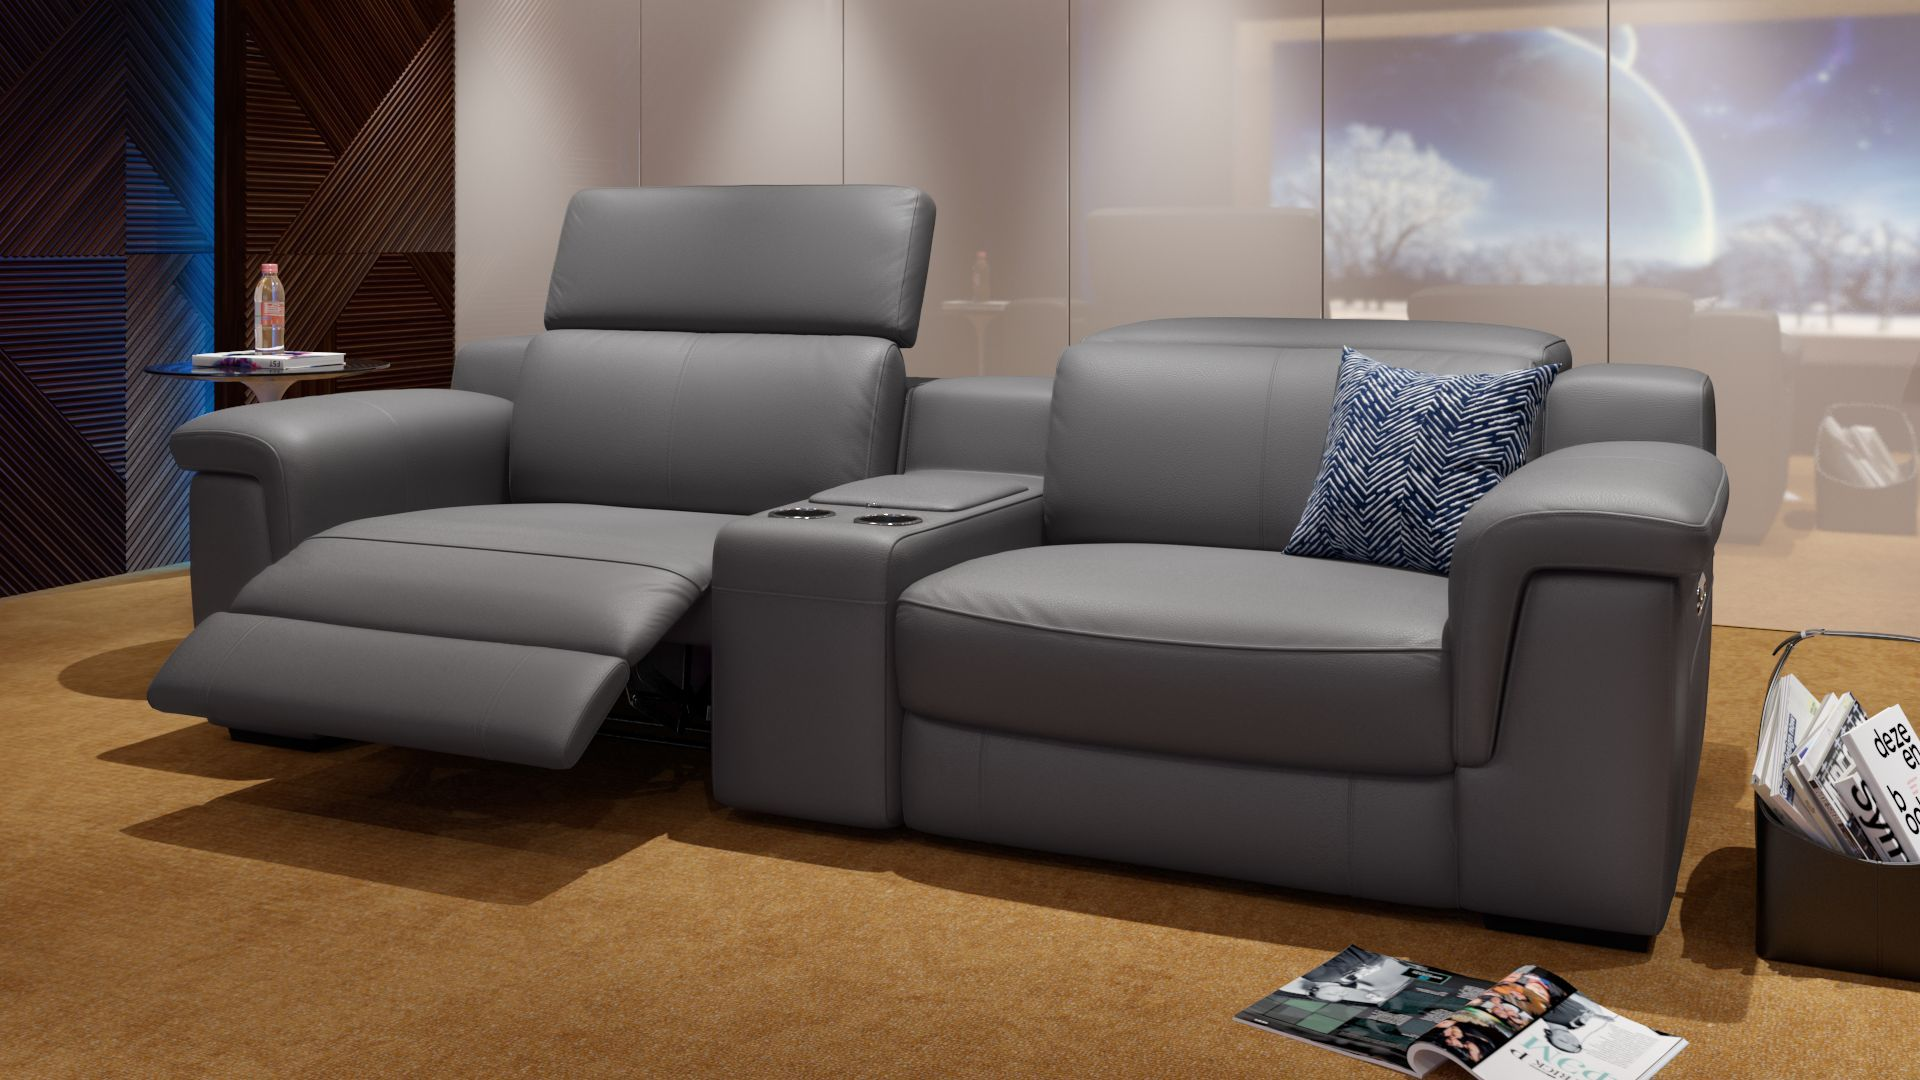 Funktionscouch Aus Leder Kinocouch Sofanella Sillon Reclinable Sofa Sillones